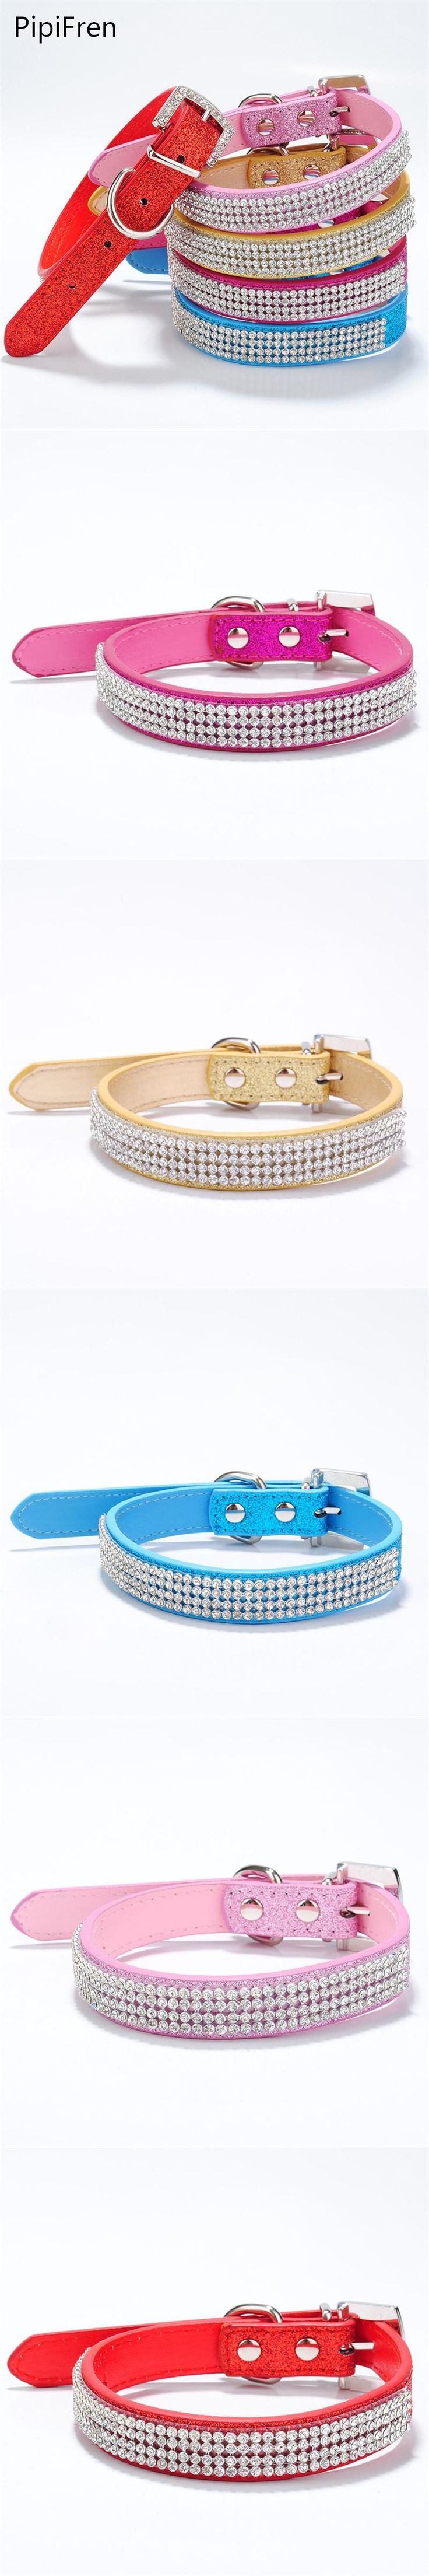 PipiFren Small Dogs Collars Rhinestone For Cat Collar Accessories Pets Puppy Supplies Chihuahua Collier chien honden halsband